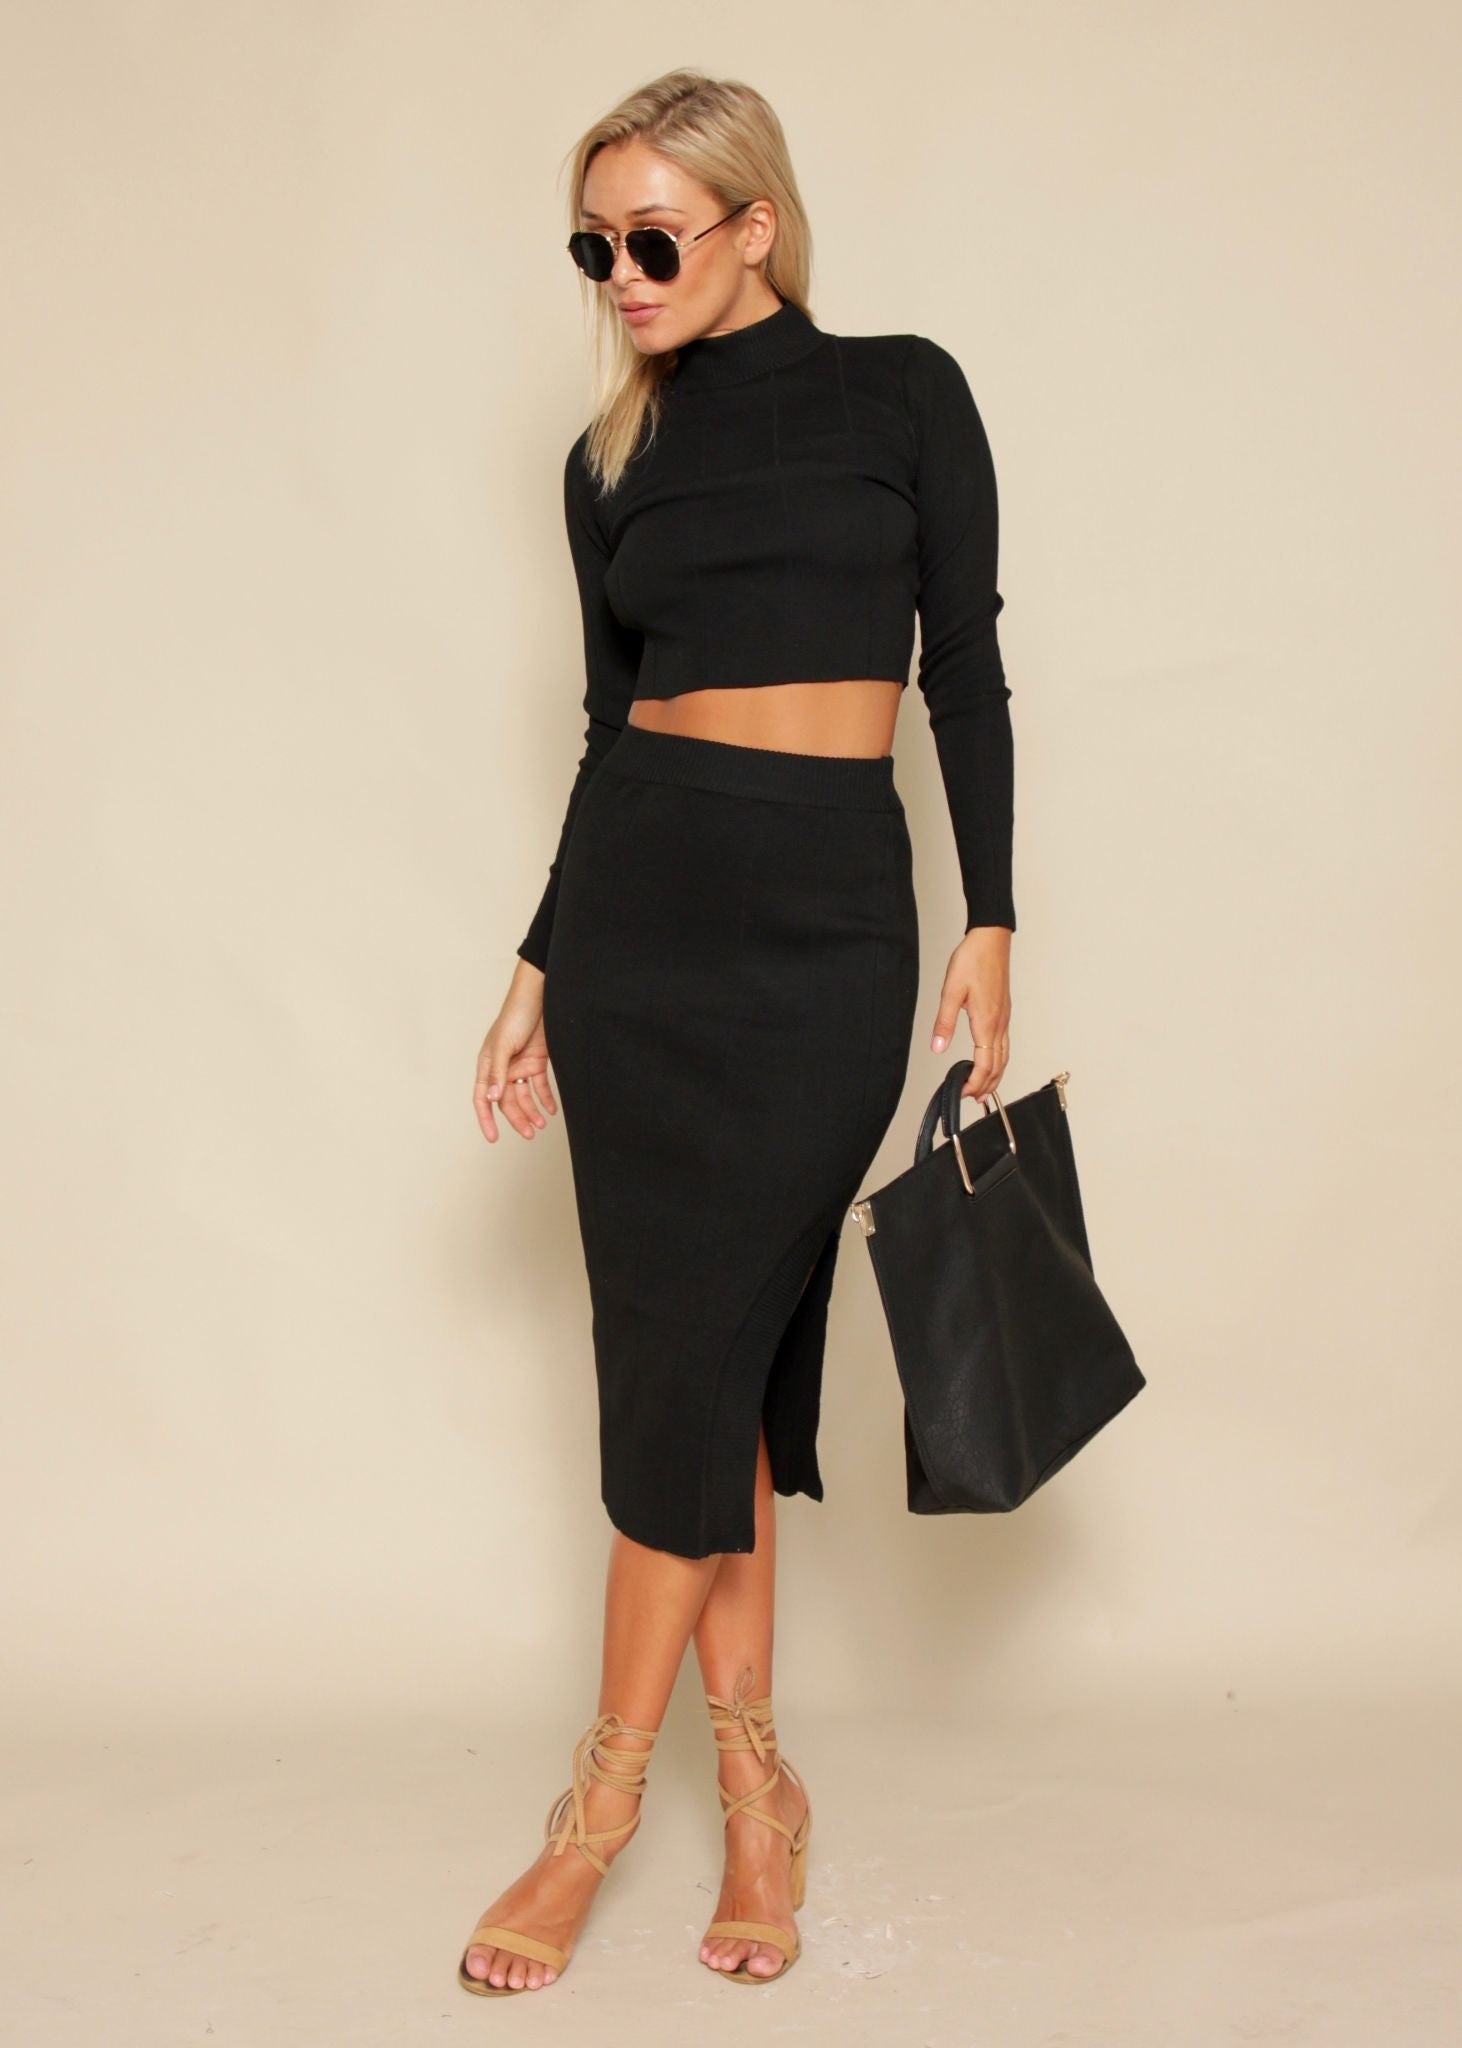 Sweet Disposition 2 Piece Set - Black